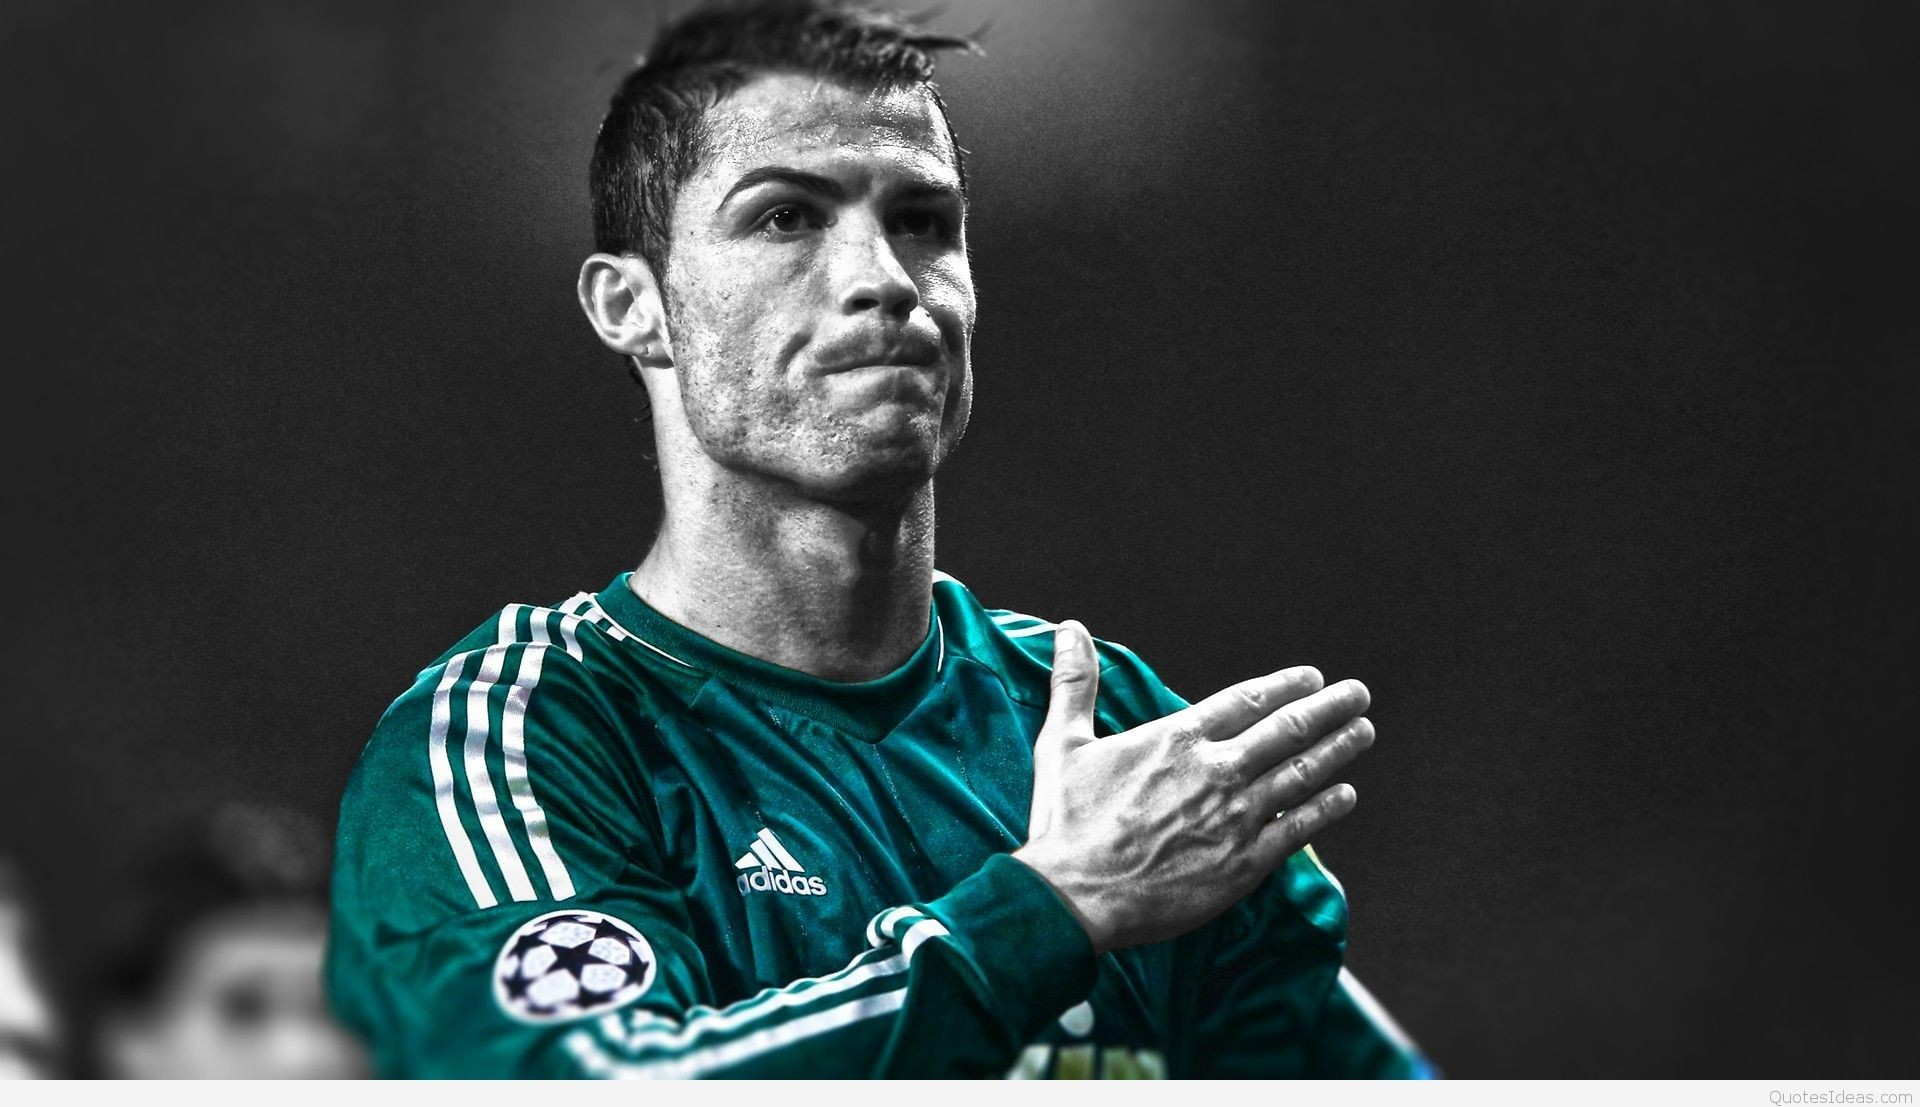 Cristiano Ronaldo 7 Wallpapers 75 Background Pictures